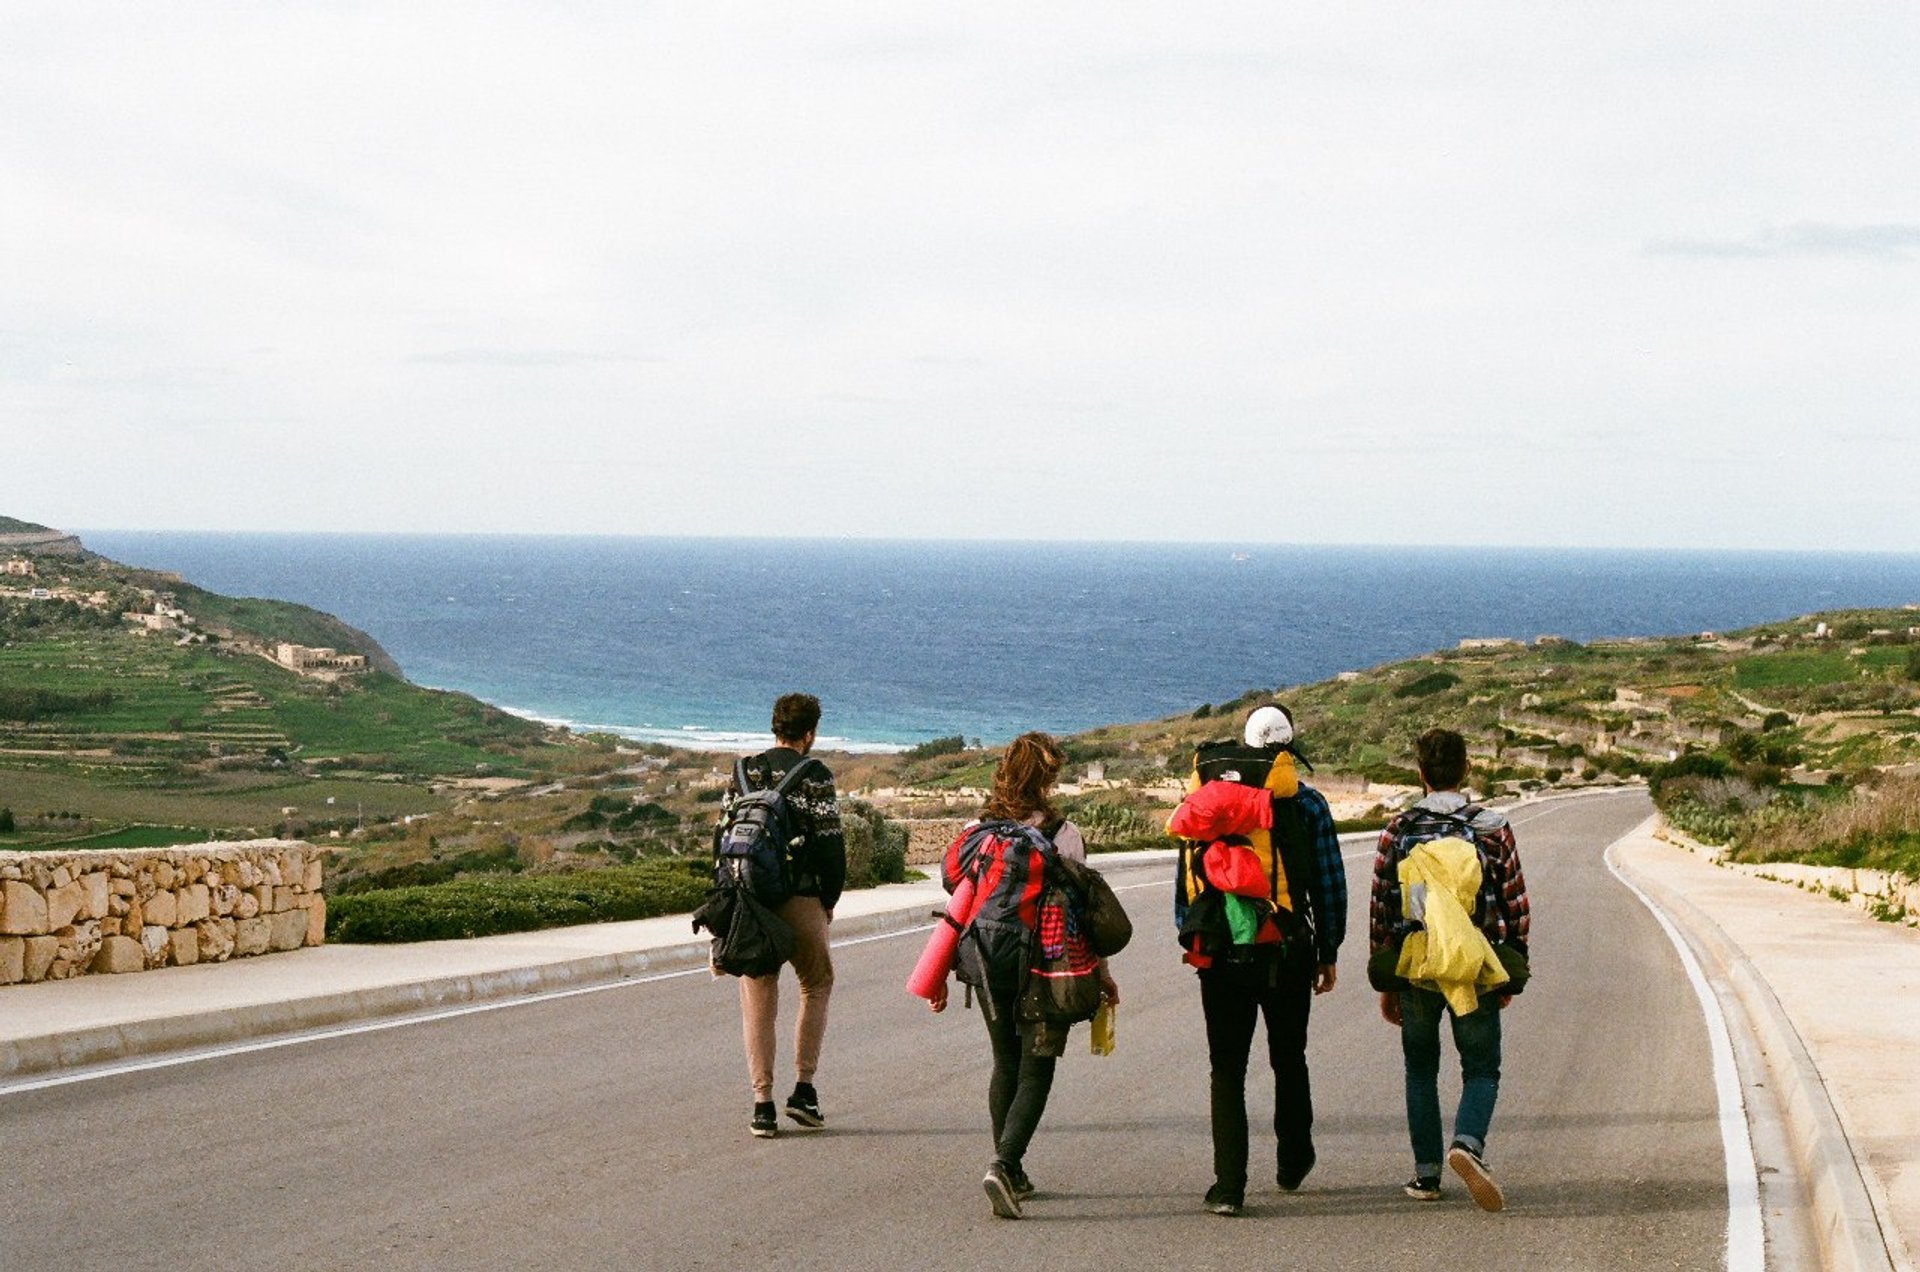 Hiking in Malta in Malta - Best Season 2020